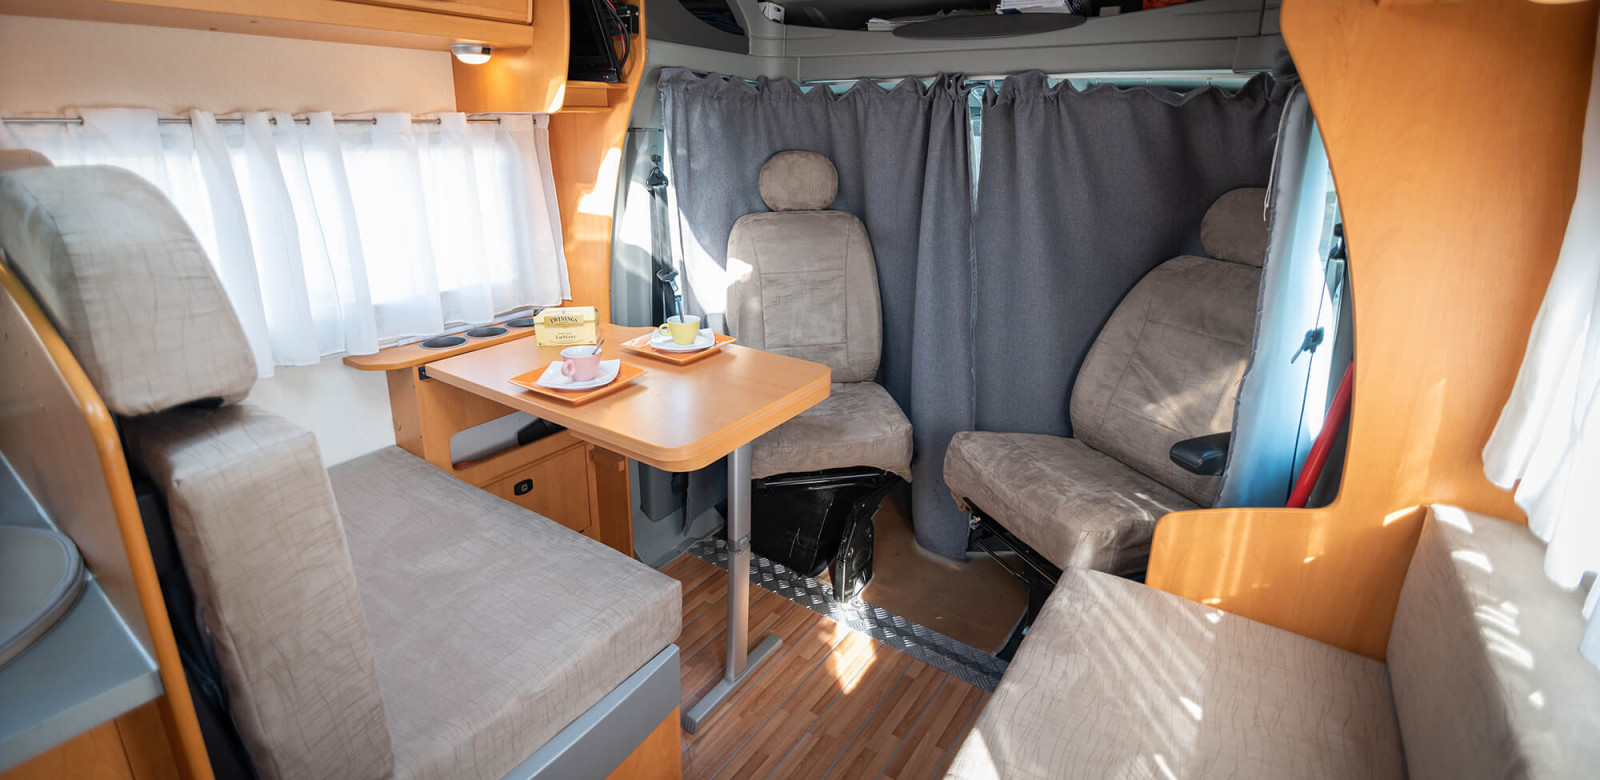 Rénovation de camping-car